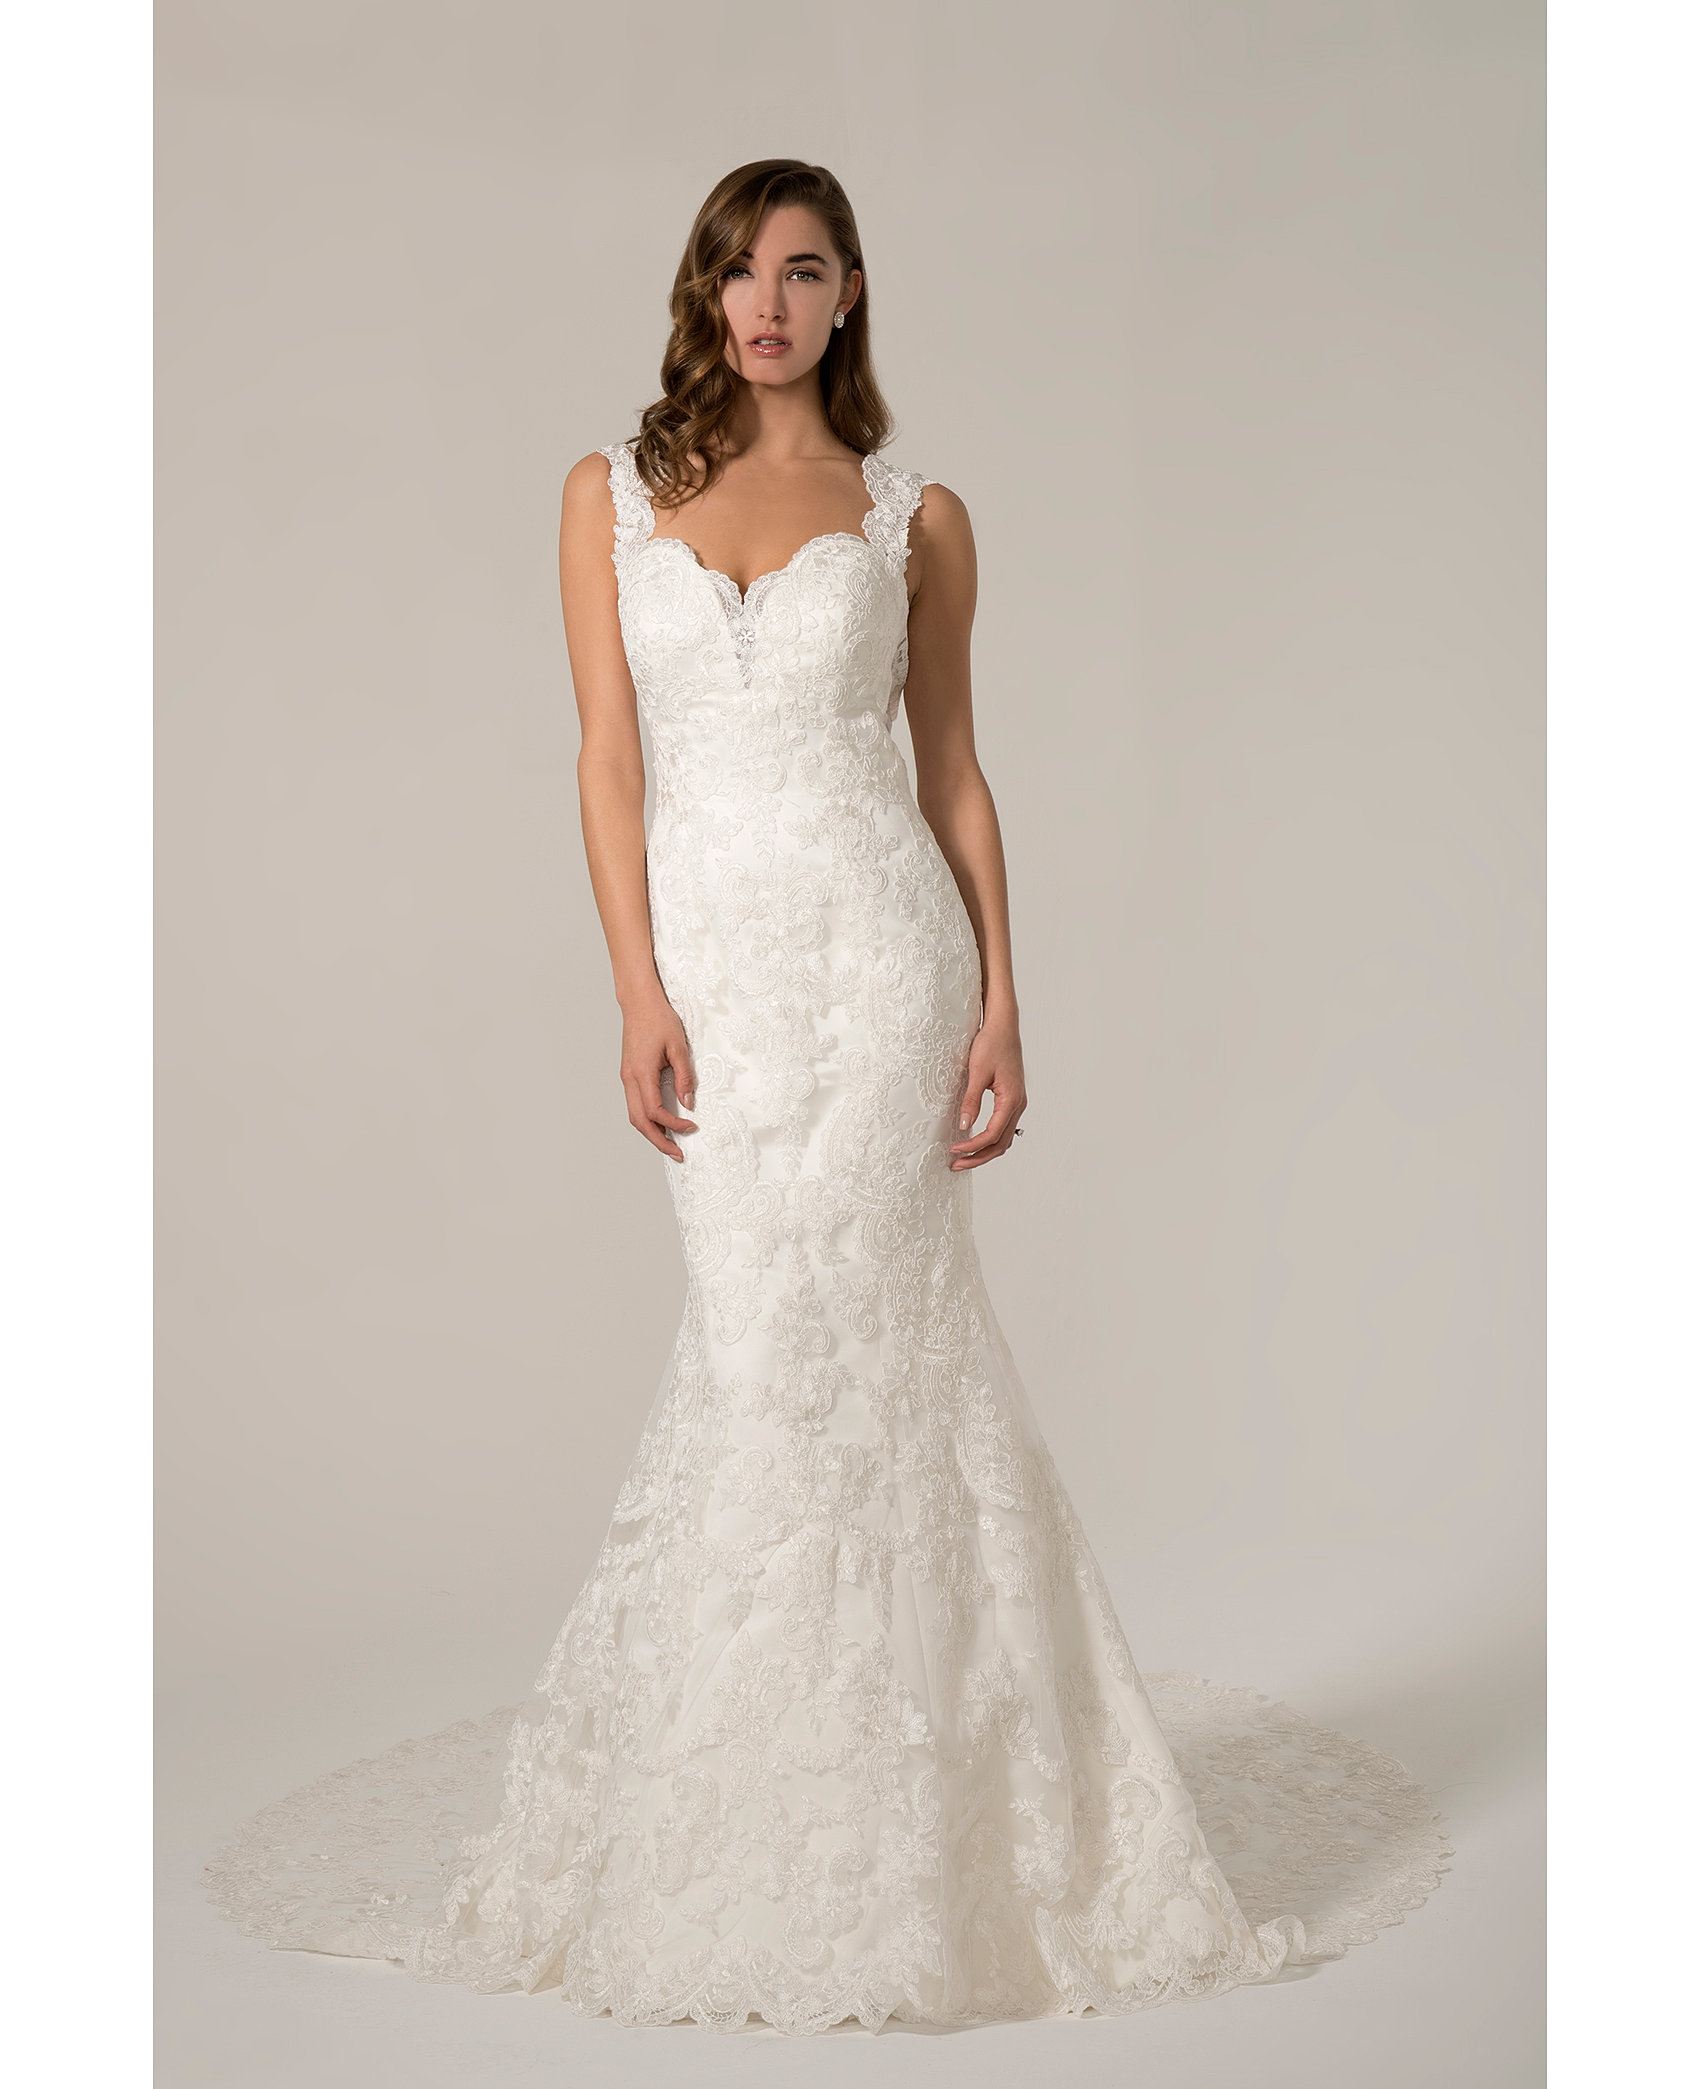 Venus Bridal Collections Beautiful Lace Fit And Flare Gown With Sweetheart Neckline Shoulder Straps Low Back Fabulous Train